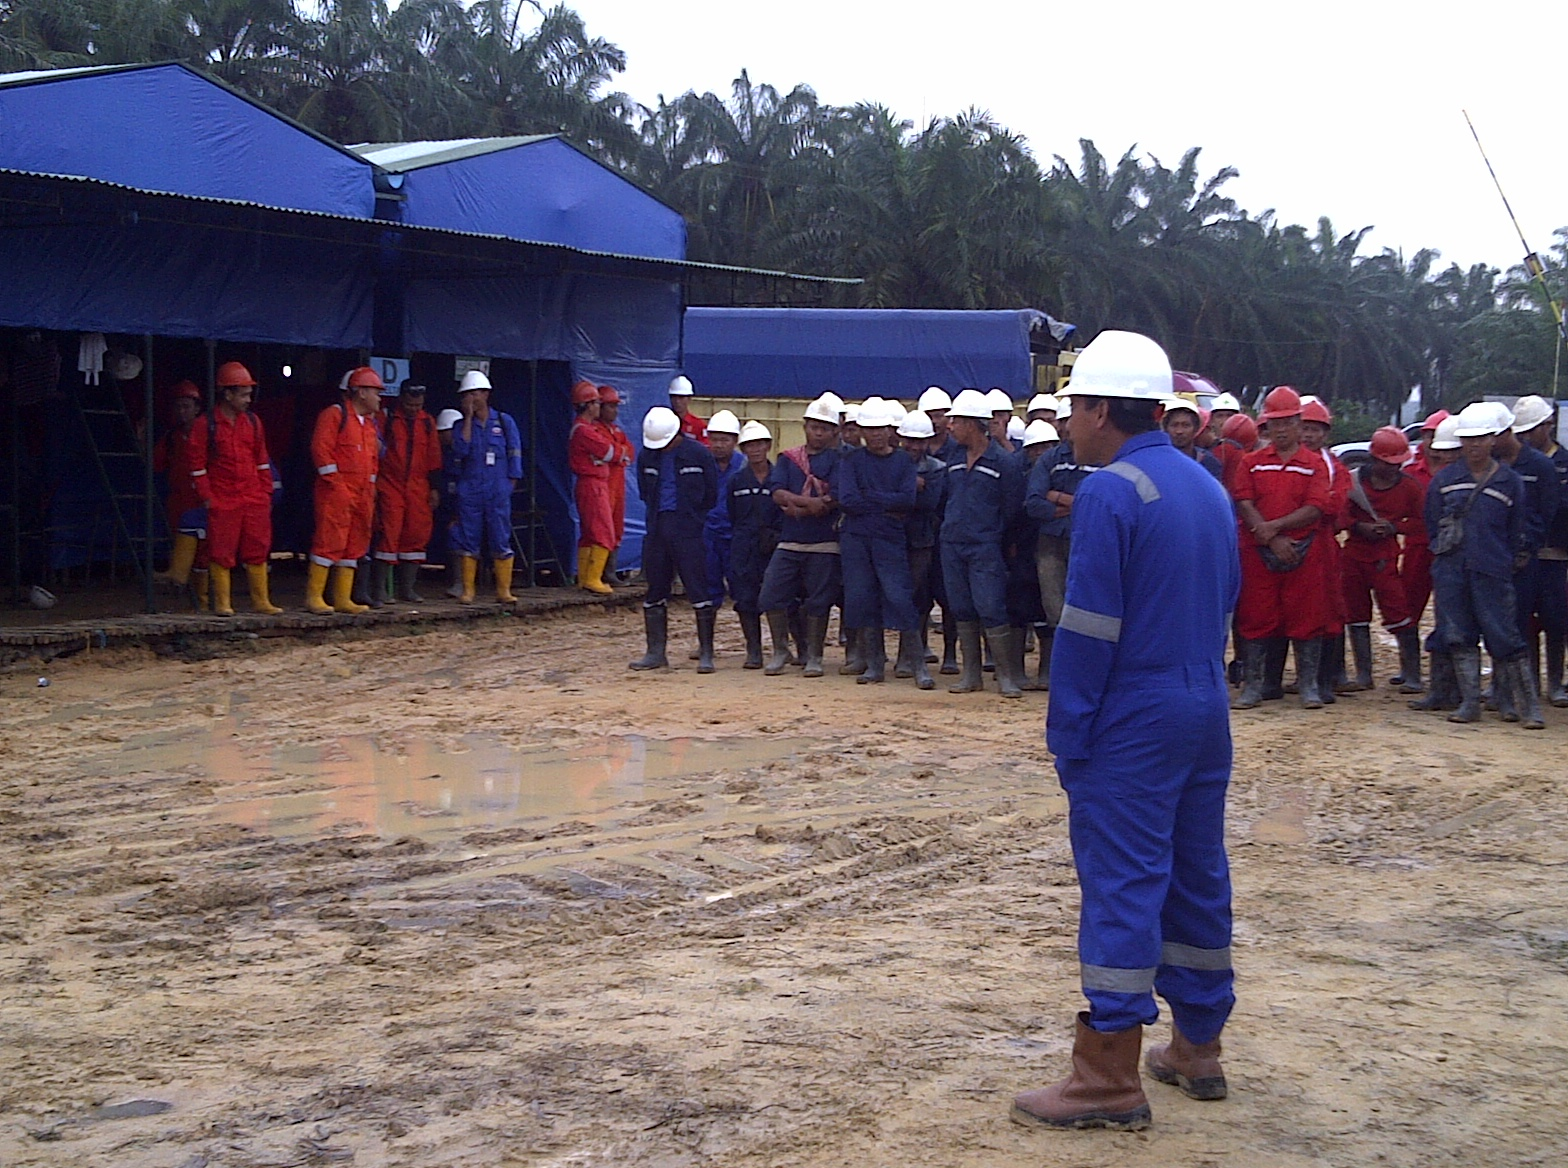 NOTES SEISMIC SURVEY WORKERS